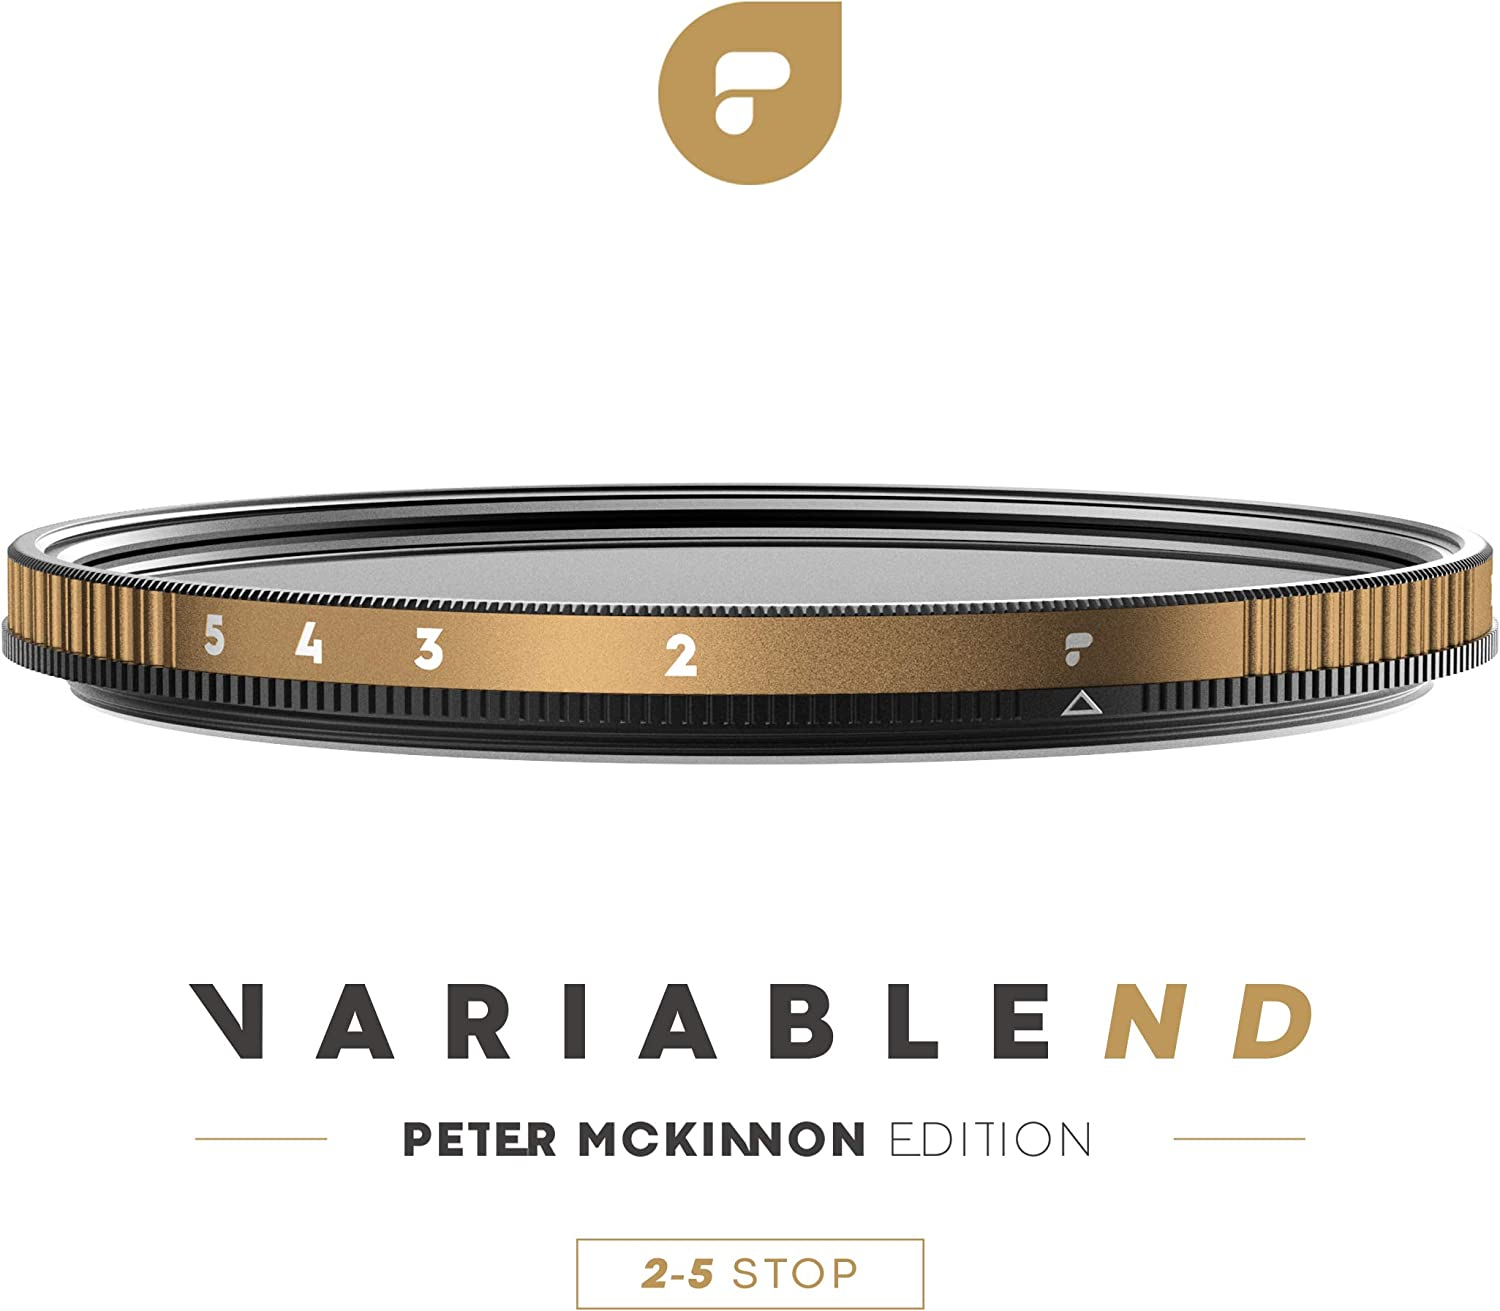 PolarPro 67mm Variable ND Filter (2 to 5 Stop) - Peter McKinnon Edition